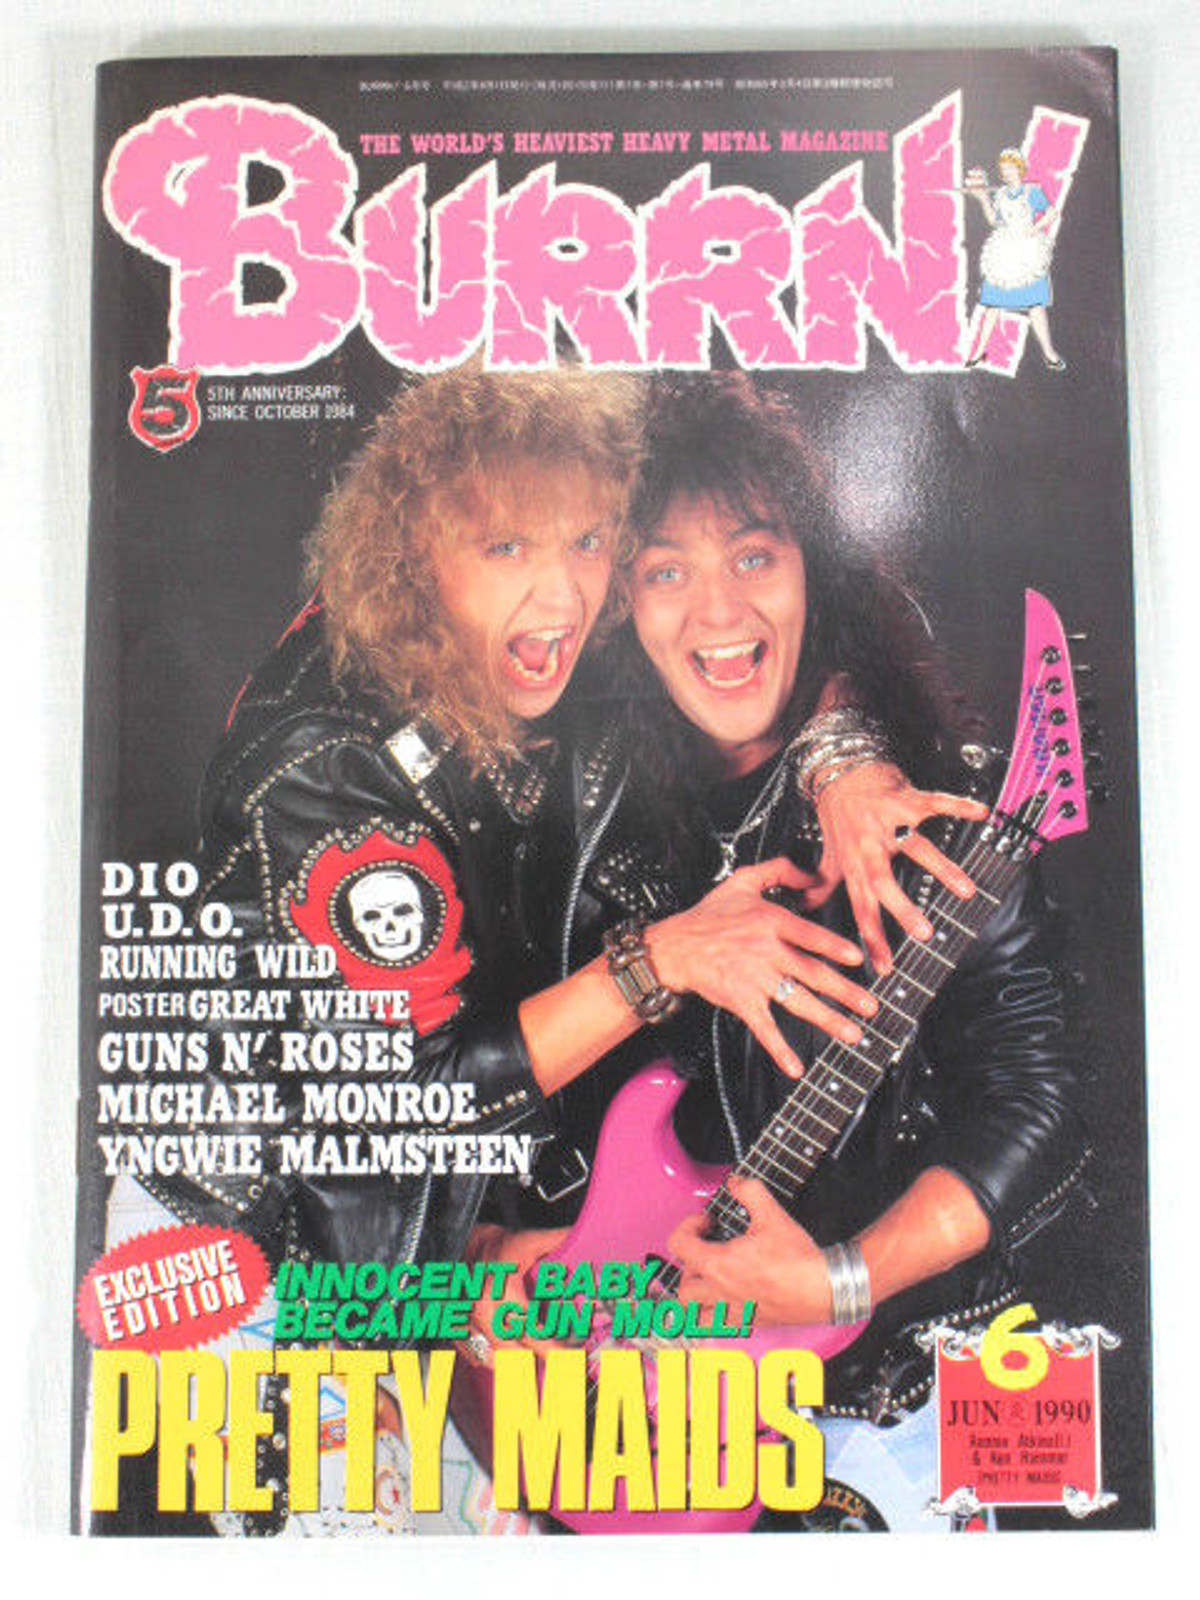 1990/06 BURRN! Japan Rock Magazine PRETTY MAIDS/GUNS N' ROSES/RUNNING WILD/DIO